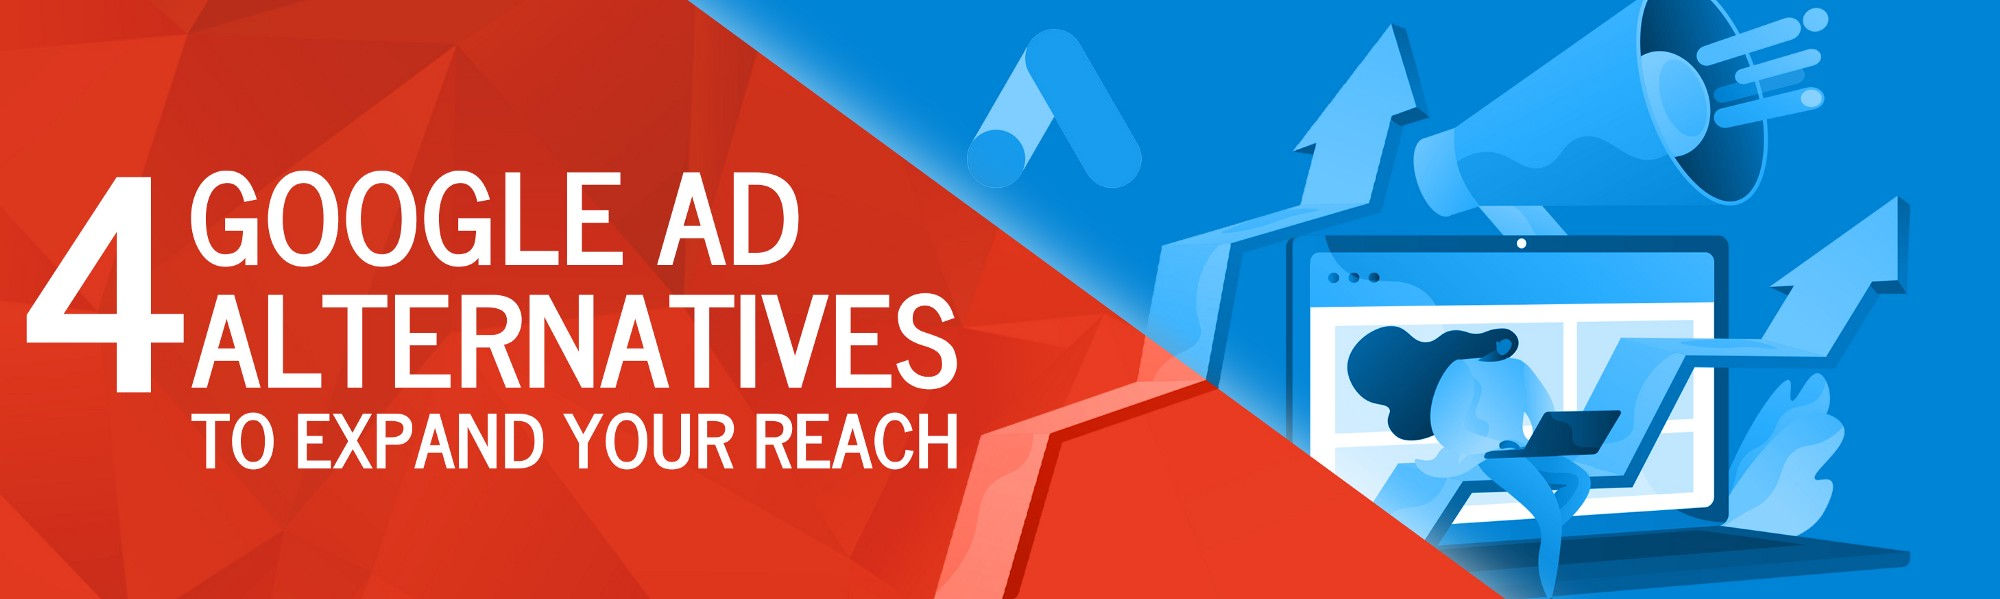 4 Google Ad Alternatives to Expand Your Reach